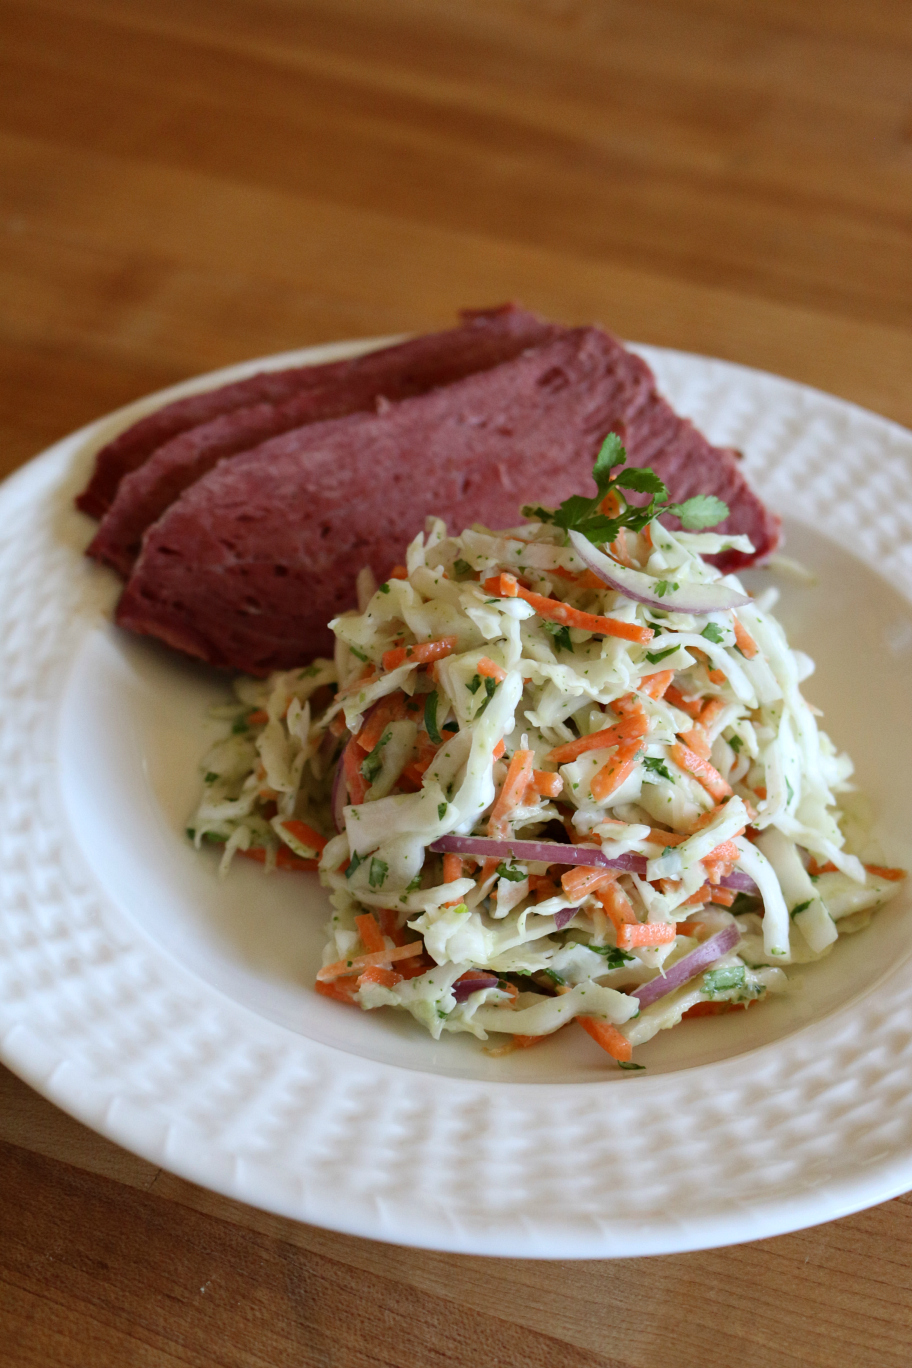 Keto Friendly Recipe - Slow Roasted Corn Beef and Spicy Coleslaw with Hatch Green Chile Ranch Dressing CeceliasGoodStuff.com